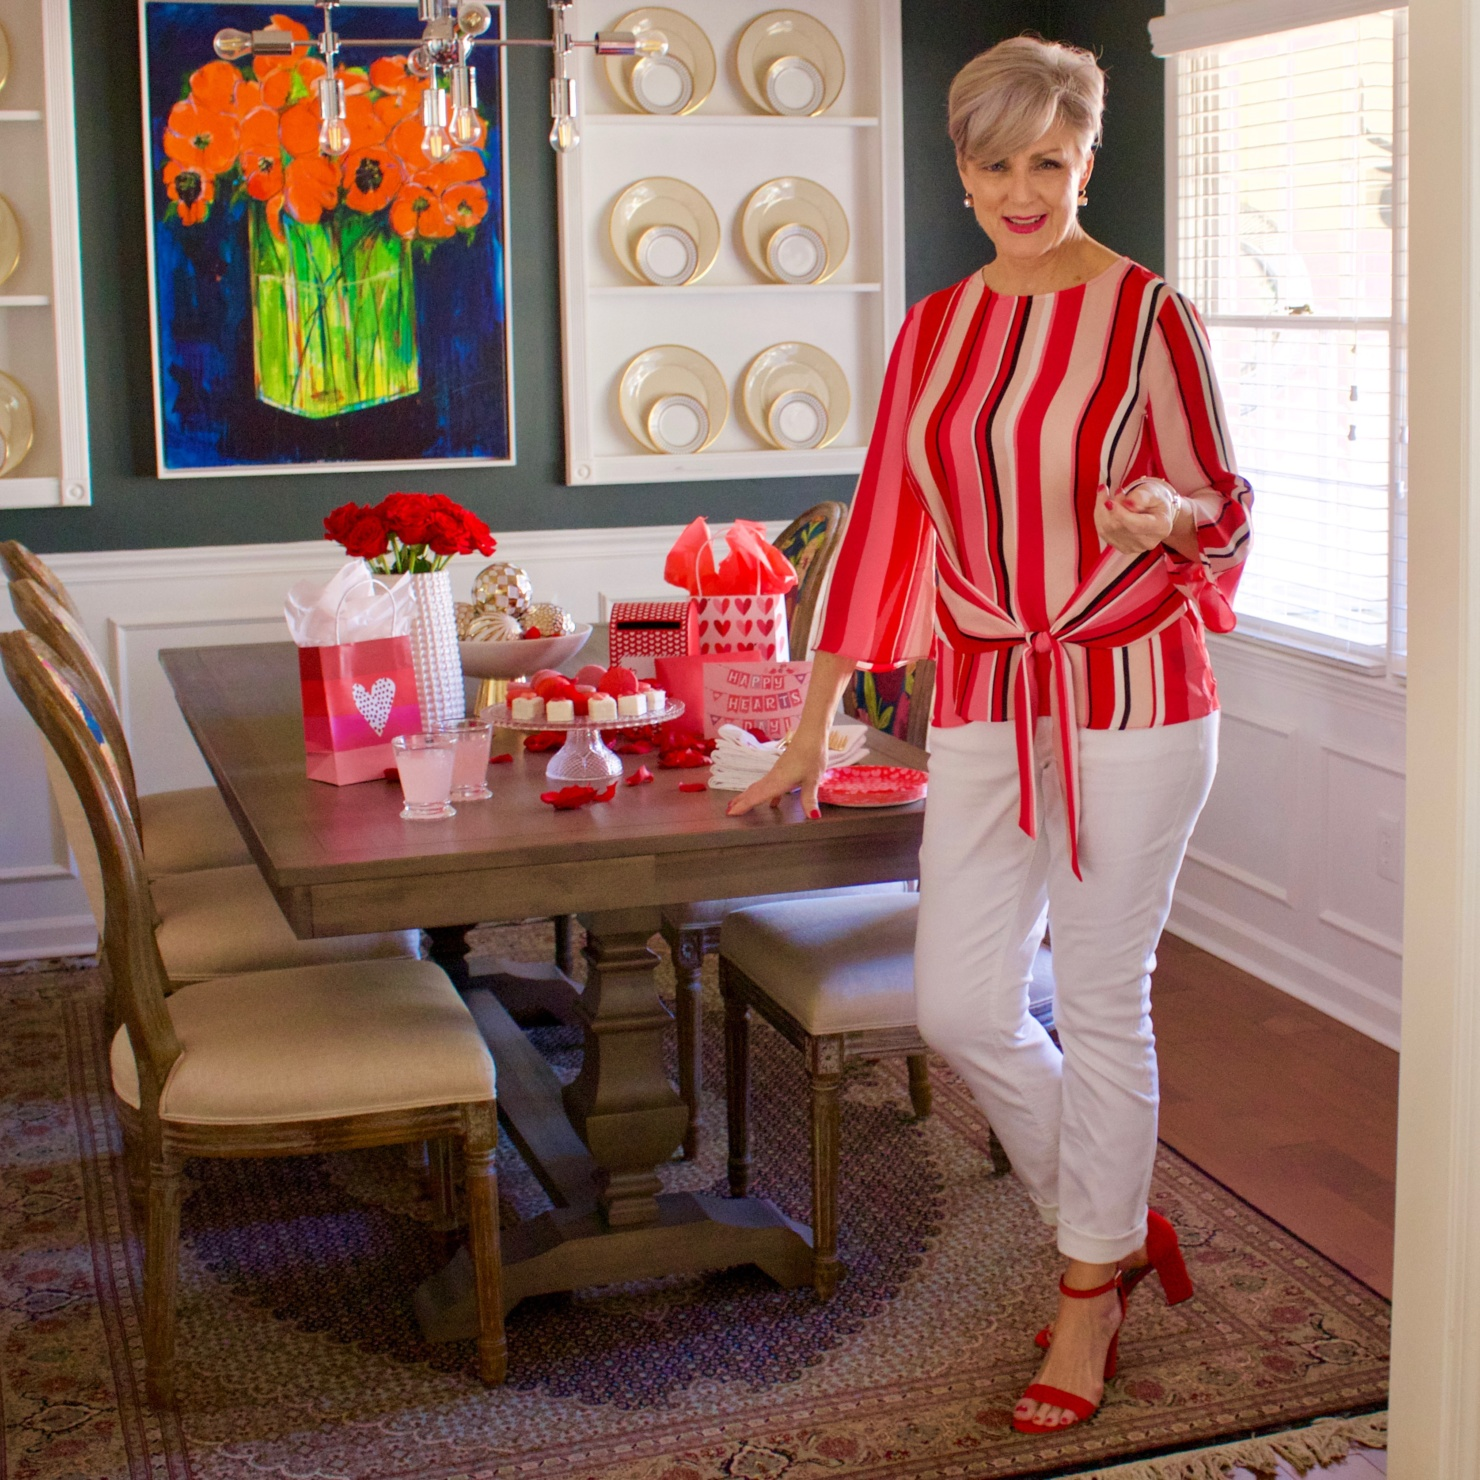 beth from Style at a Certain Age wears a striped blouse from the Love Now Wear Now collection from JCP